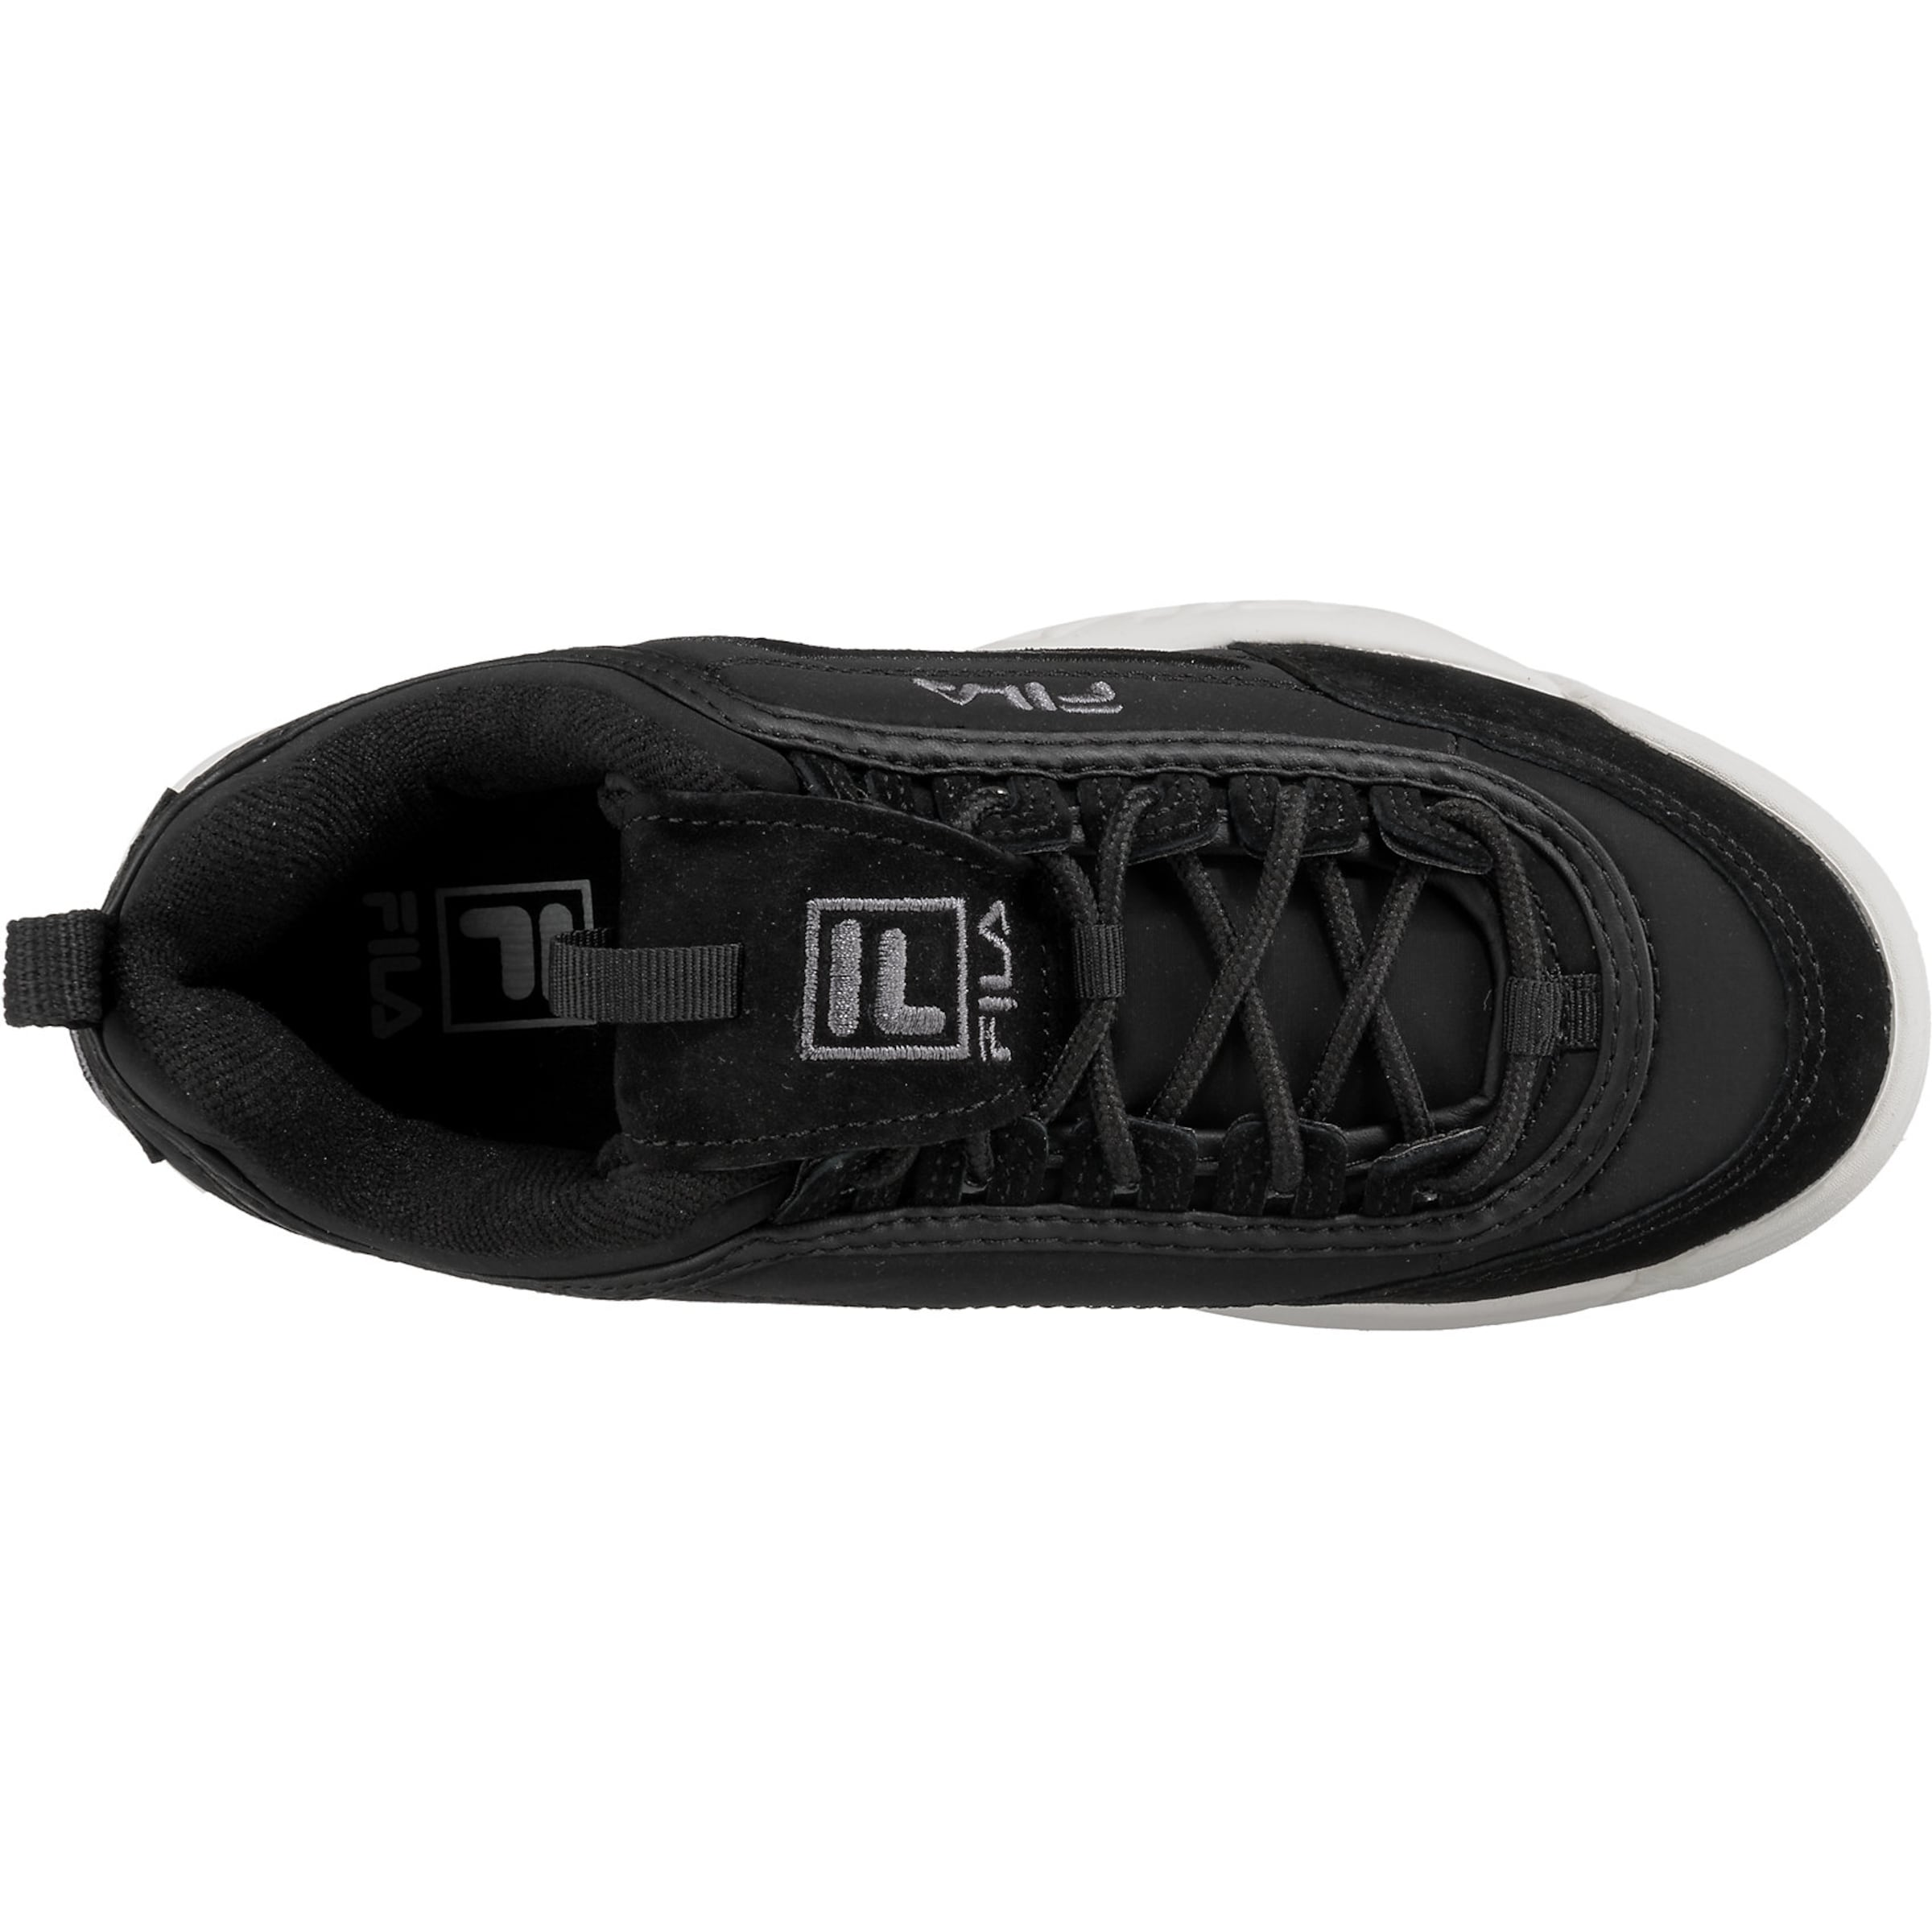 Low Schwarz Sneakers 'disruptor' Fila In rdCQxoeWB